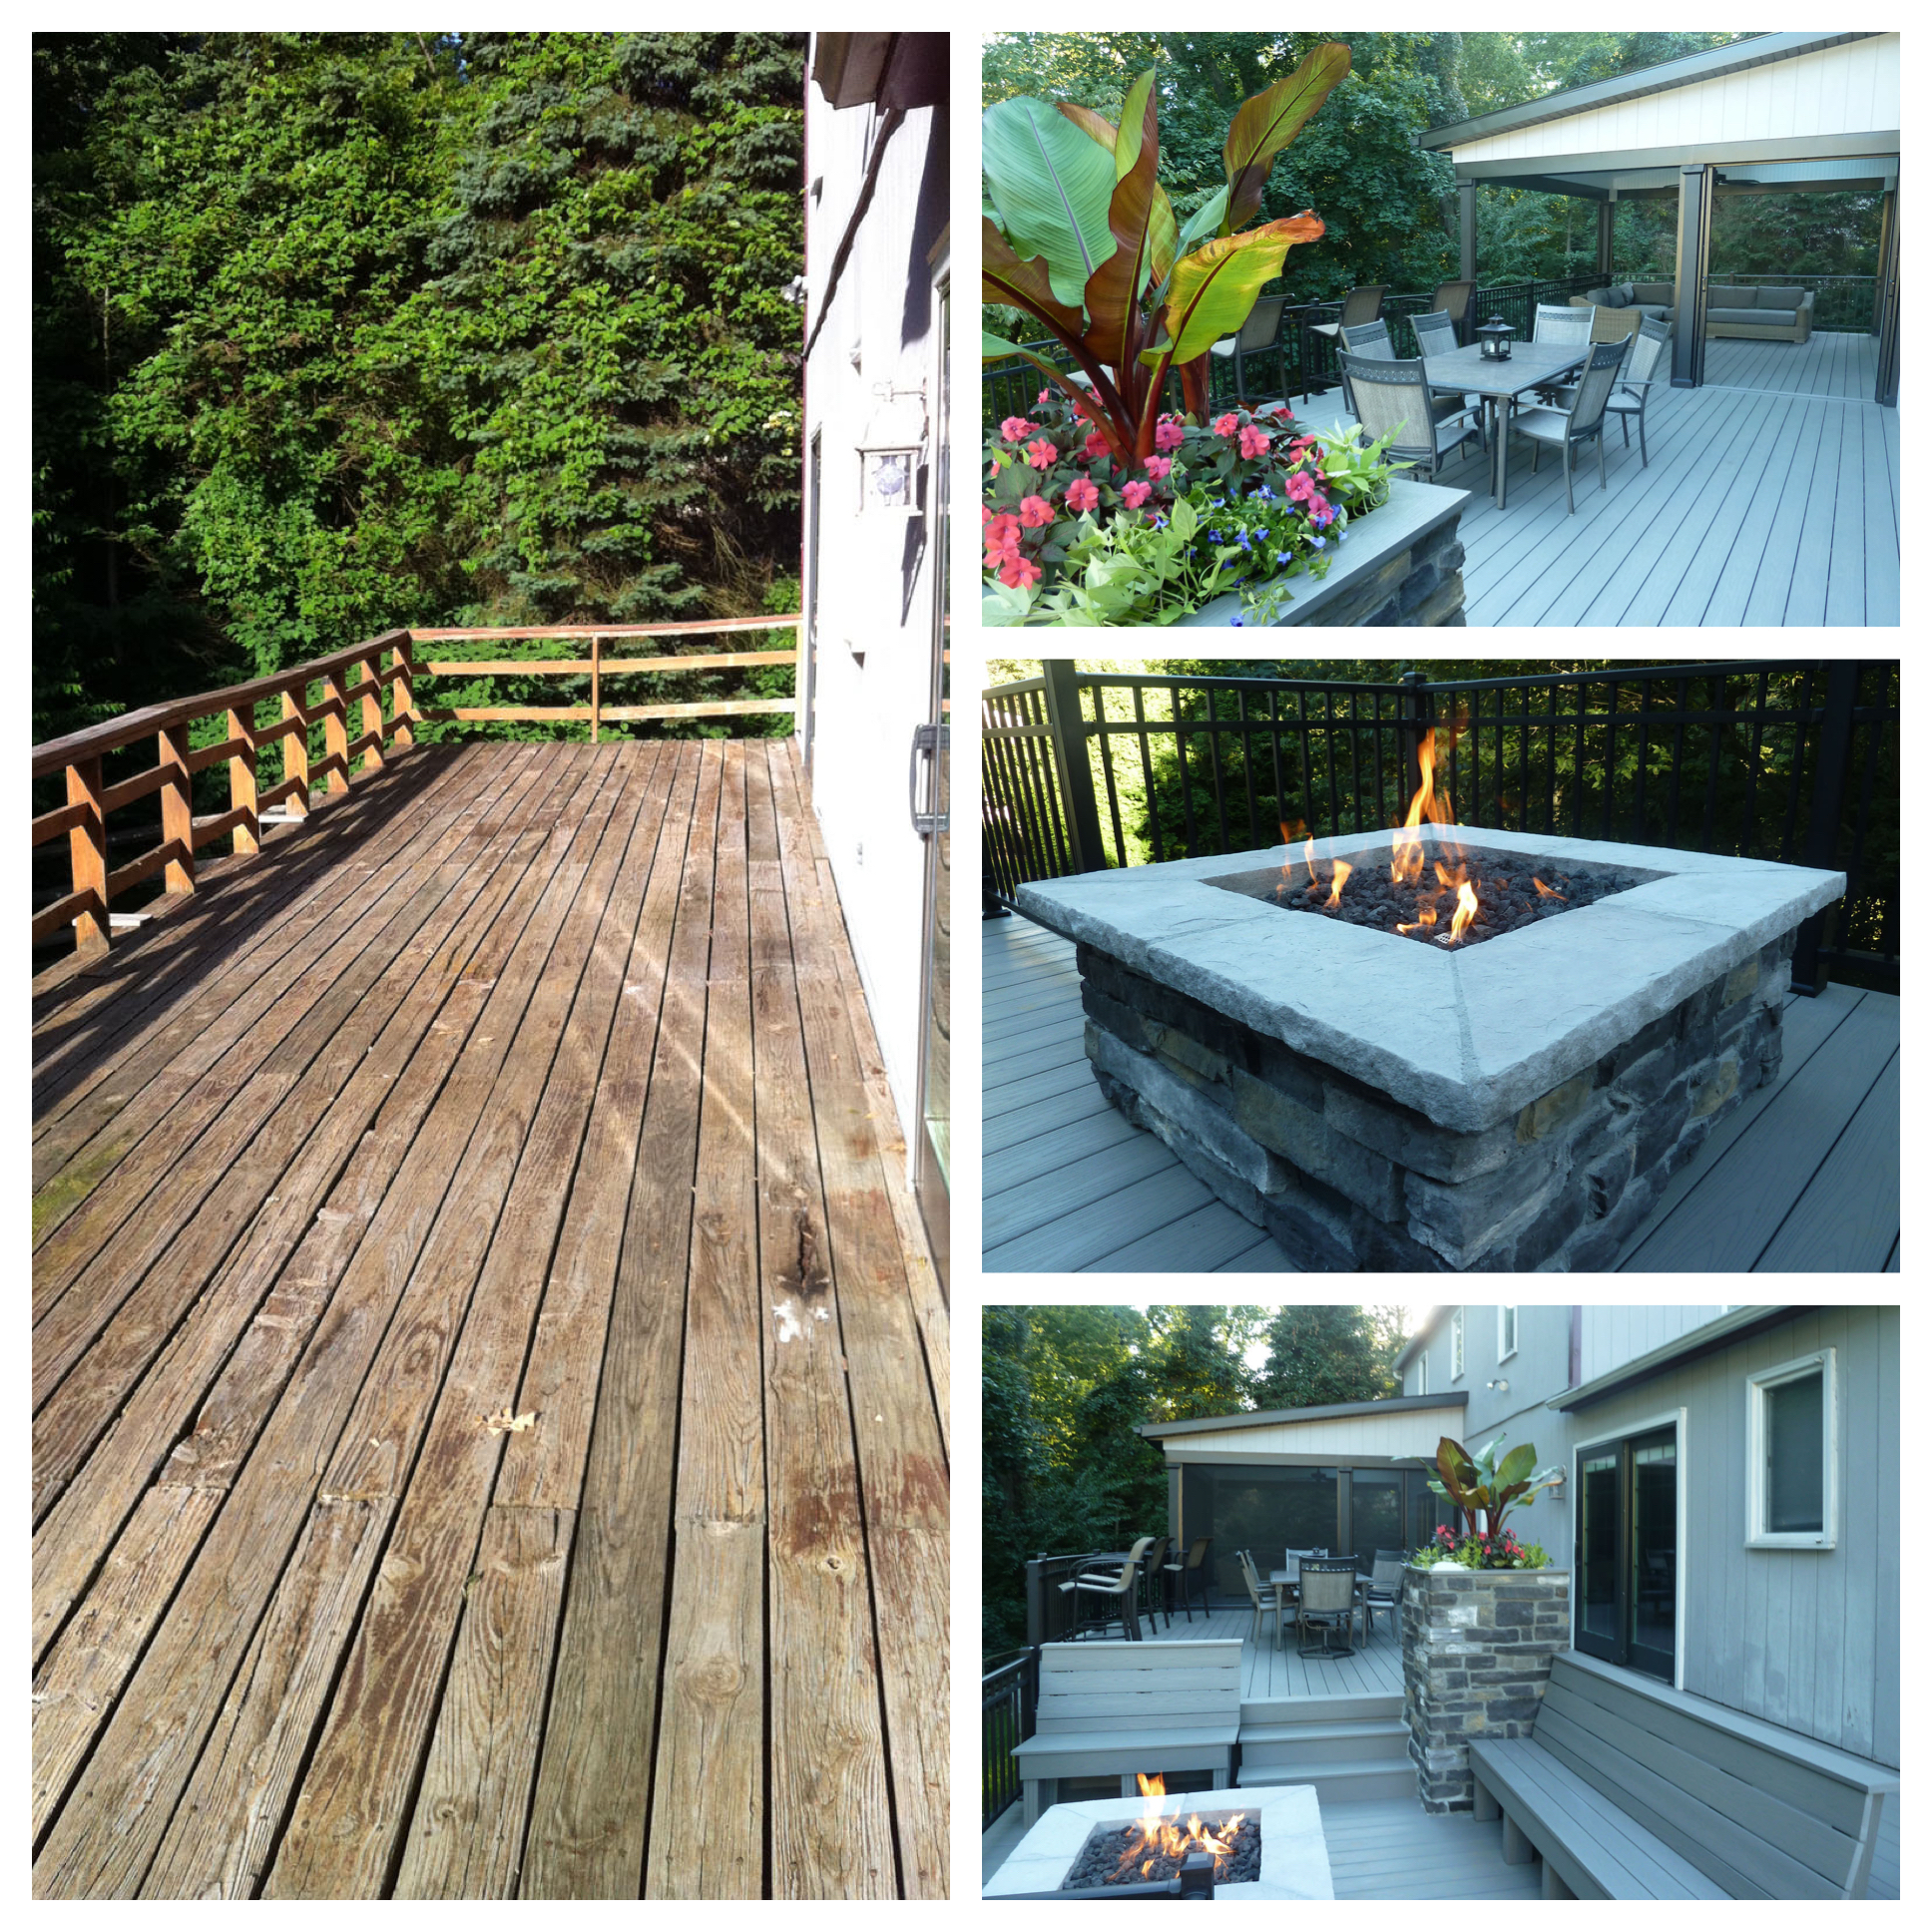 Has your old traditional wood deck seen better days? Is it severely weathered, cracked, or splintered?